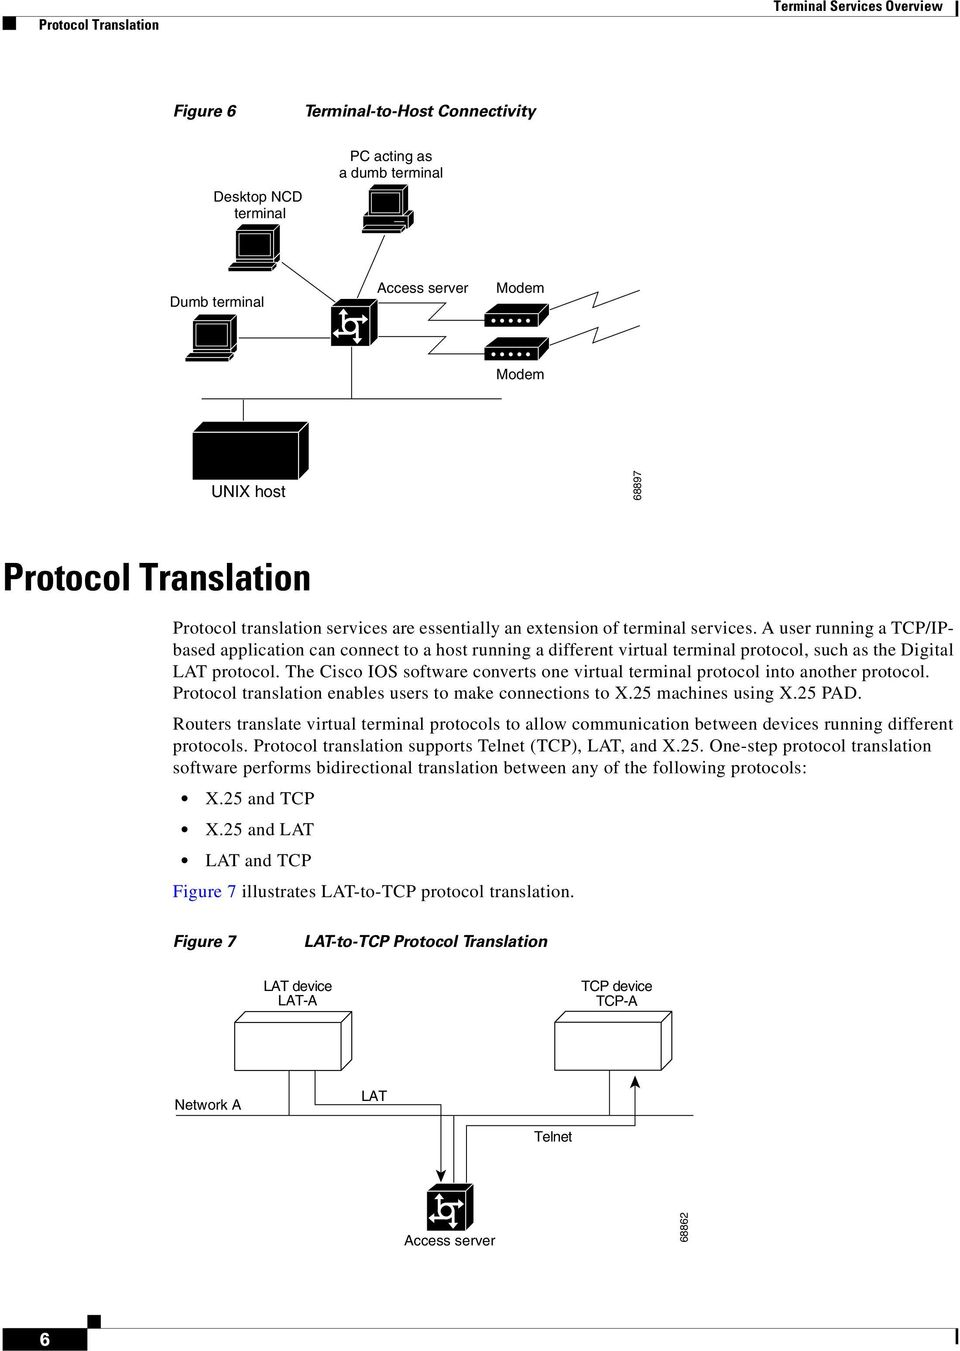 A user running a TCP/IPbased application can connect to a host running a different virtual terminal protocol, such as the Digital LAT protocol.